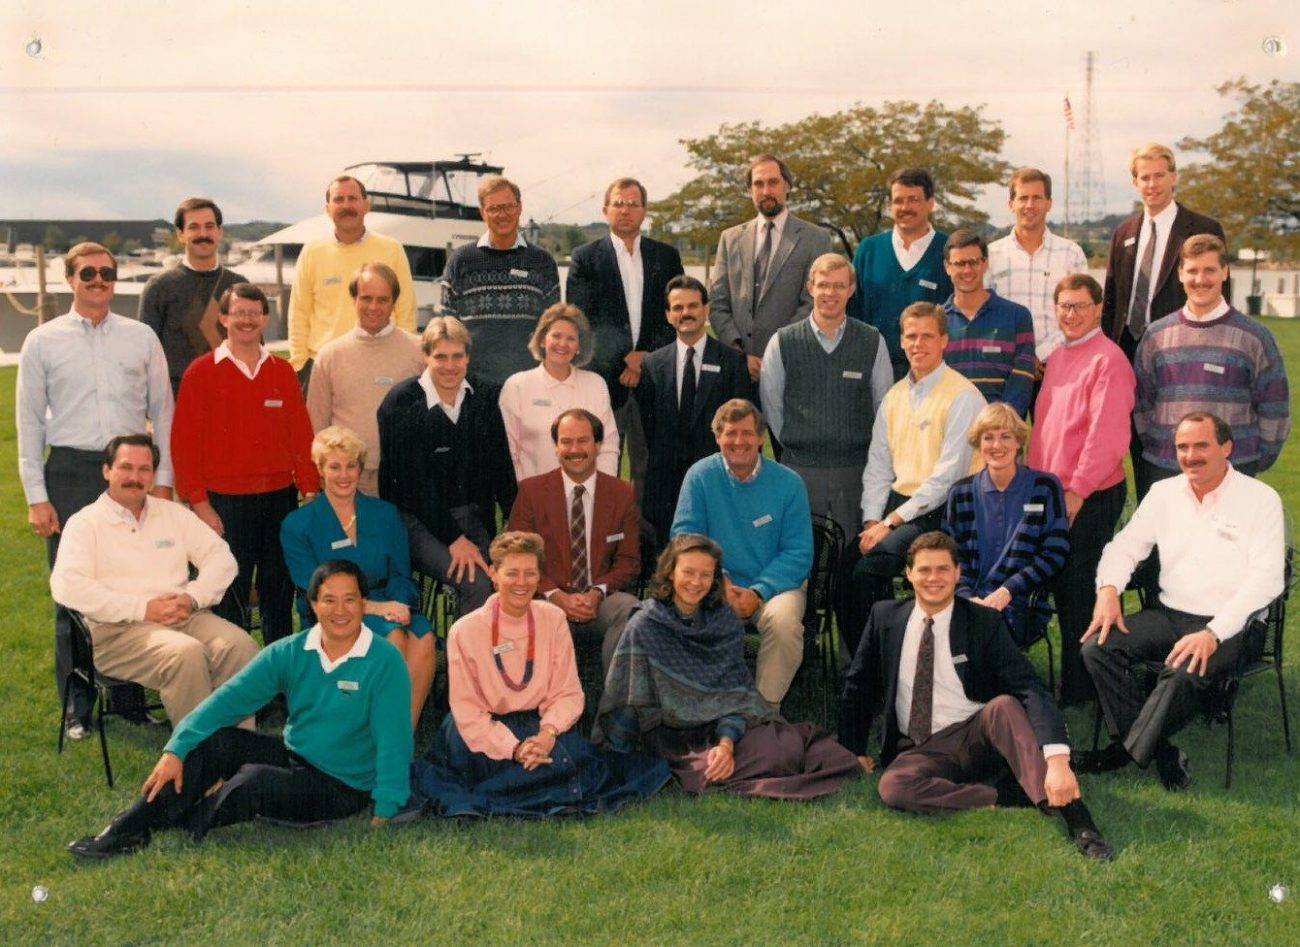 West Coast Leadership Class of 1988-1989